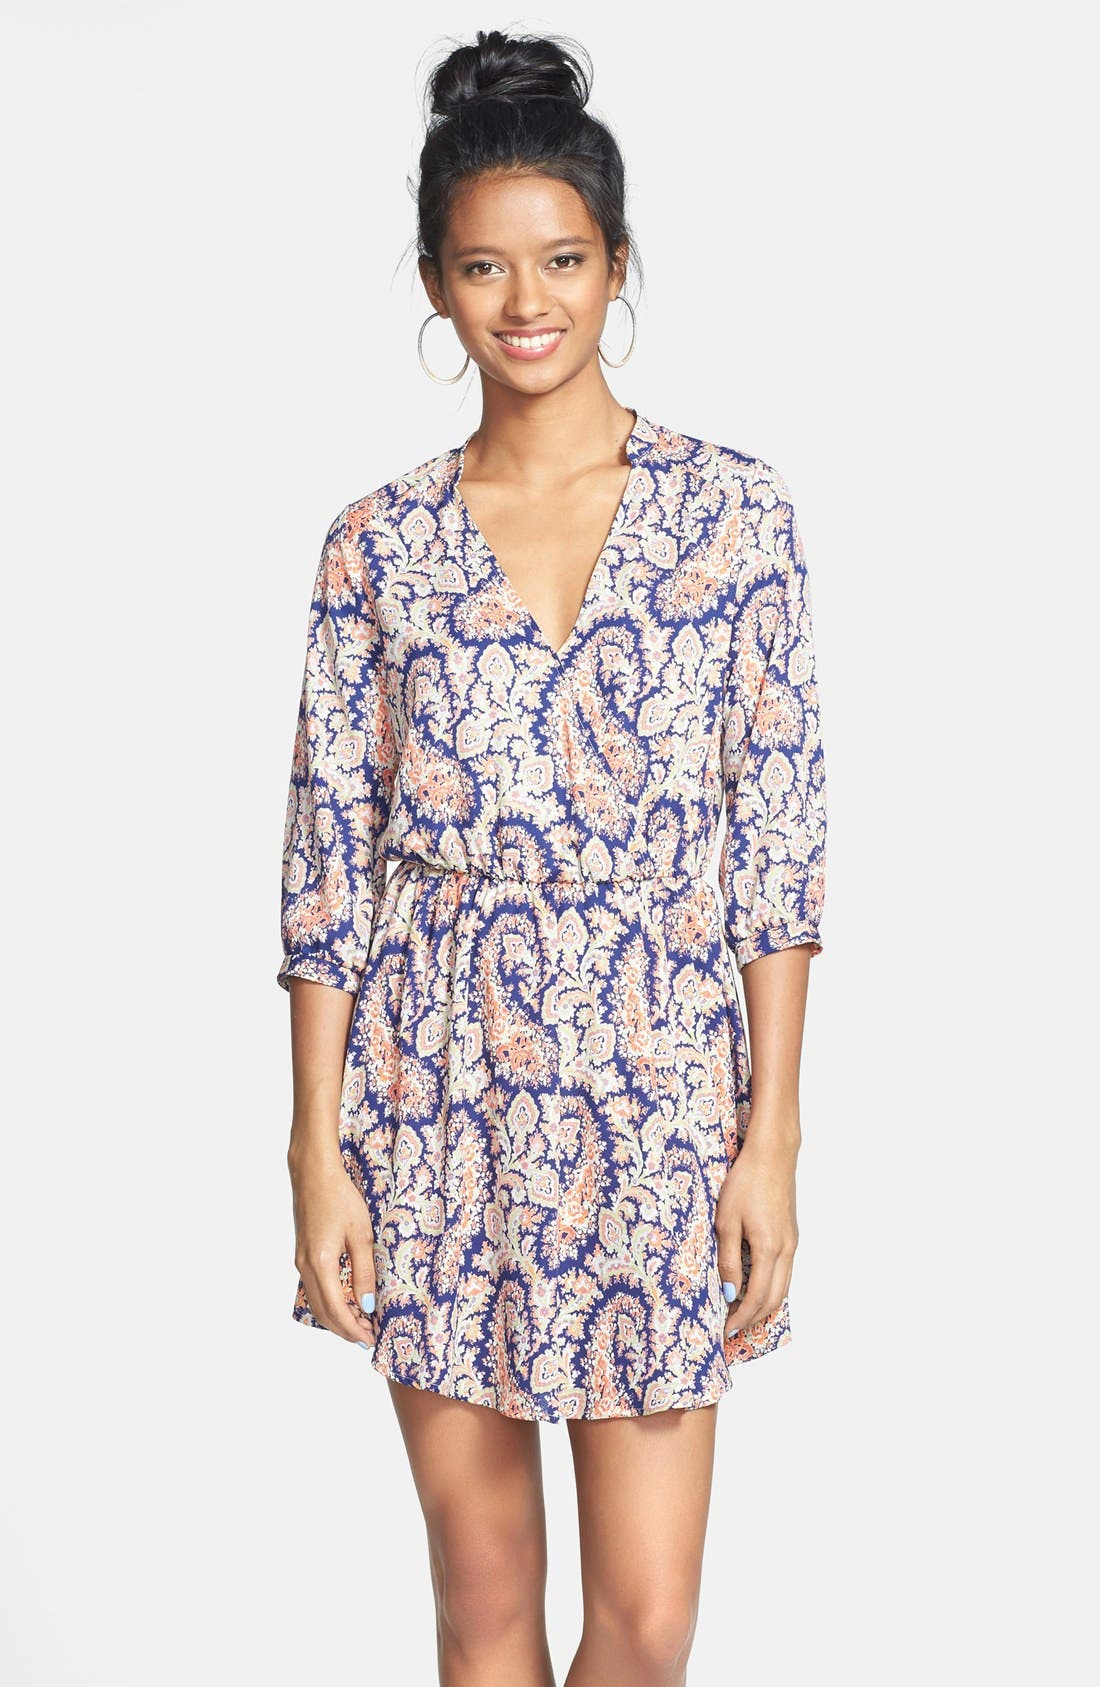 Alternate Image 1 Selected - Lush 'Kendal' Paisley Print Surplice Faux Wrap Dress (Juniors)